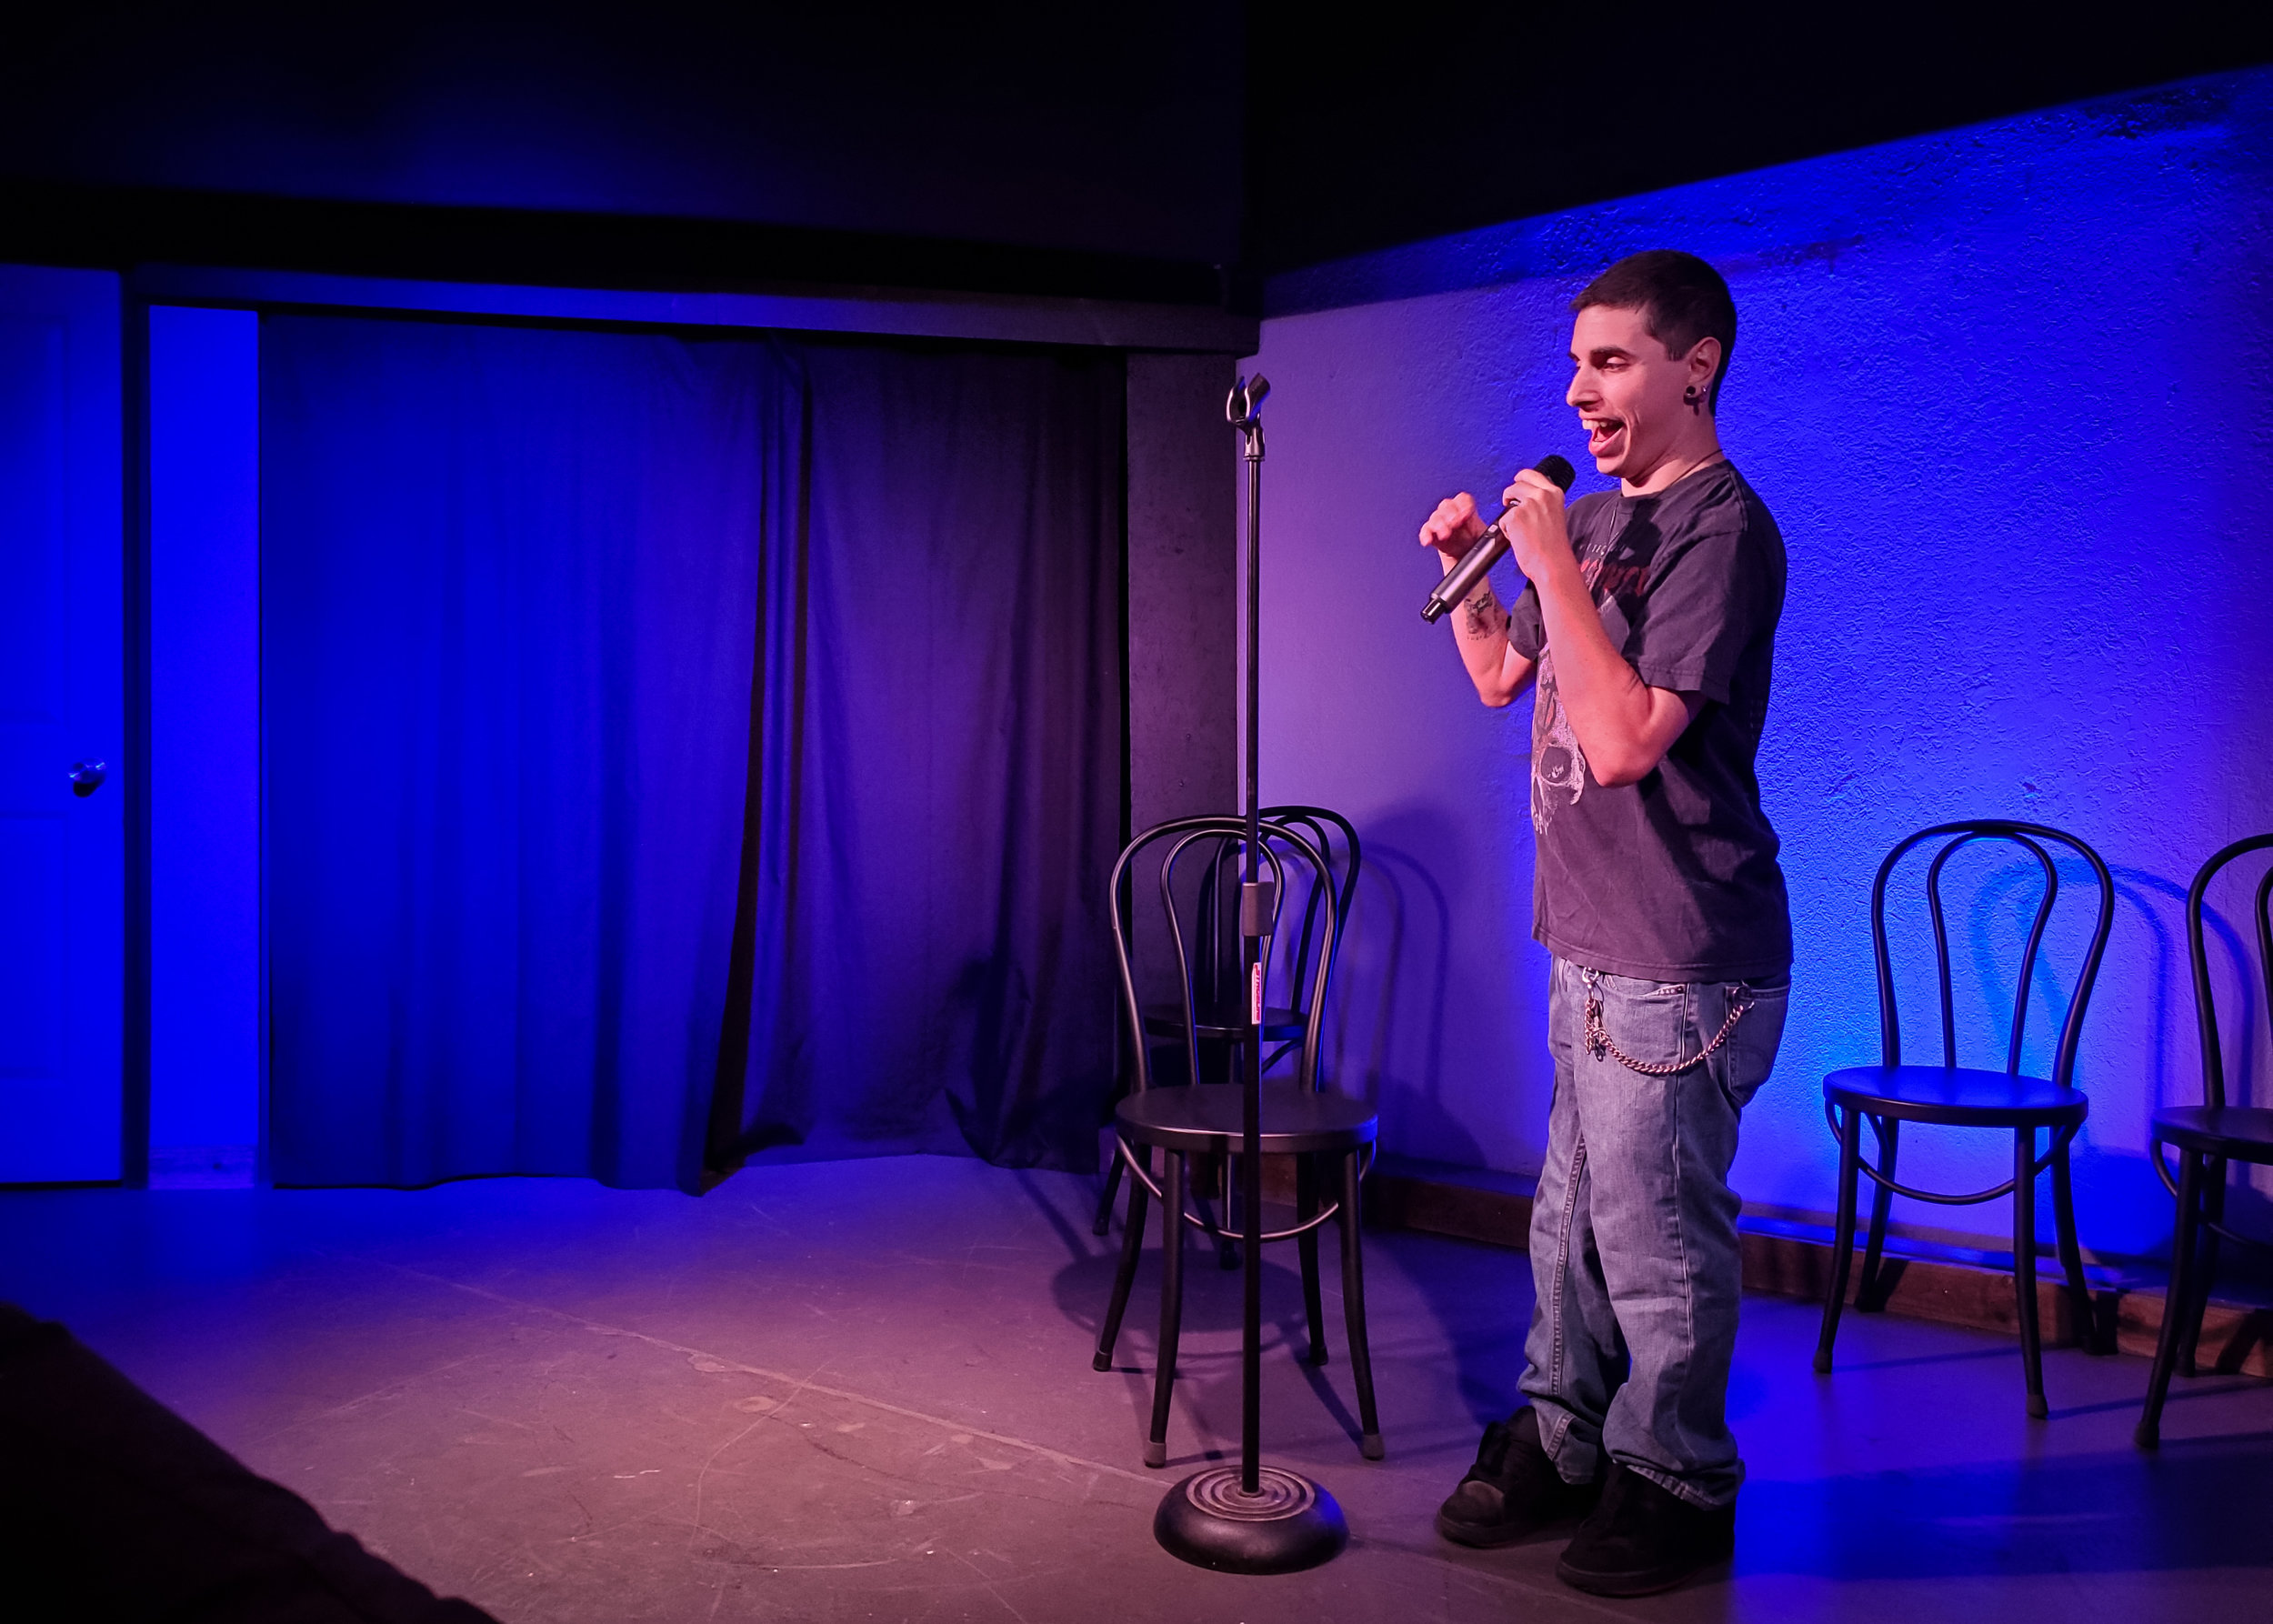 Jonathan performing at Spitfire's Stand Up Open Mic.